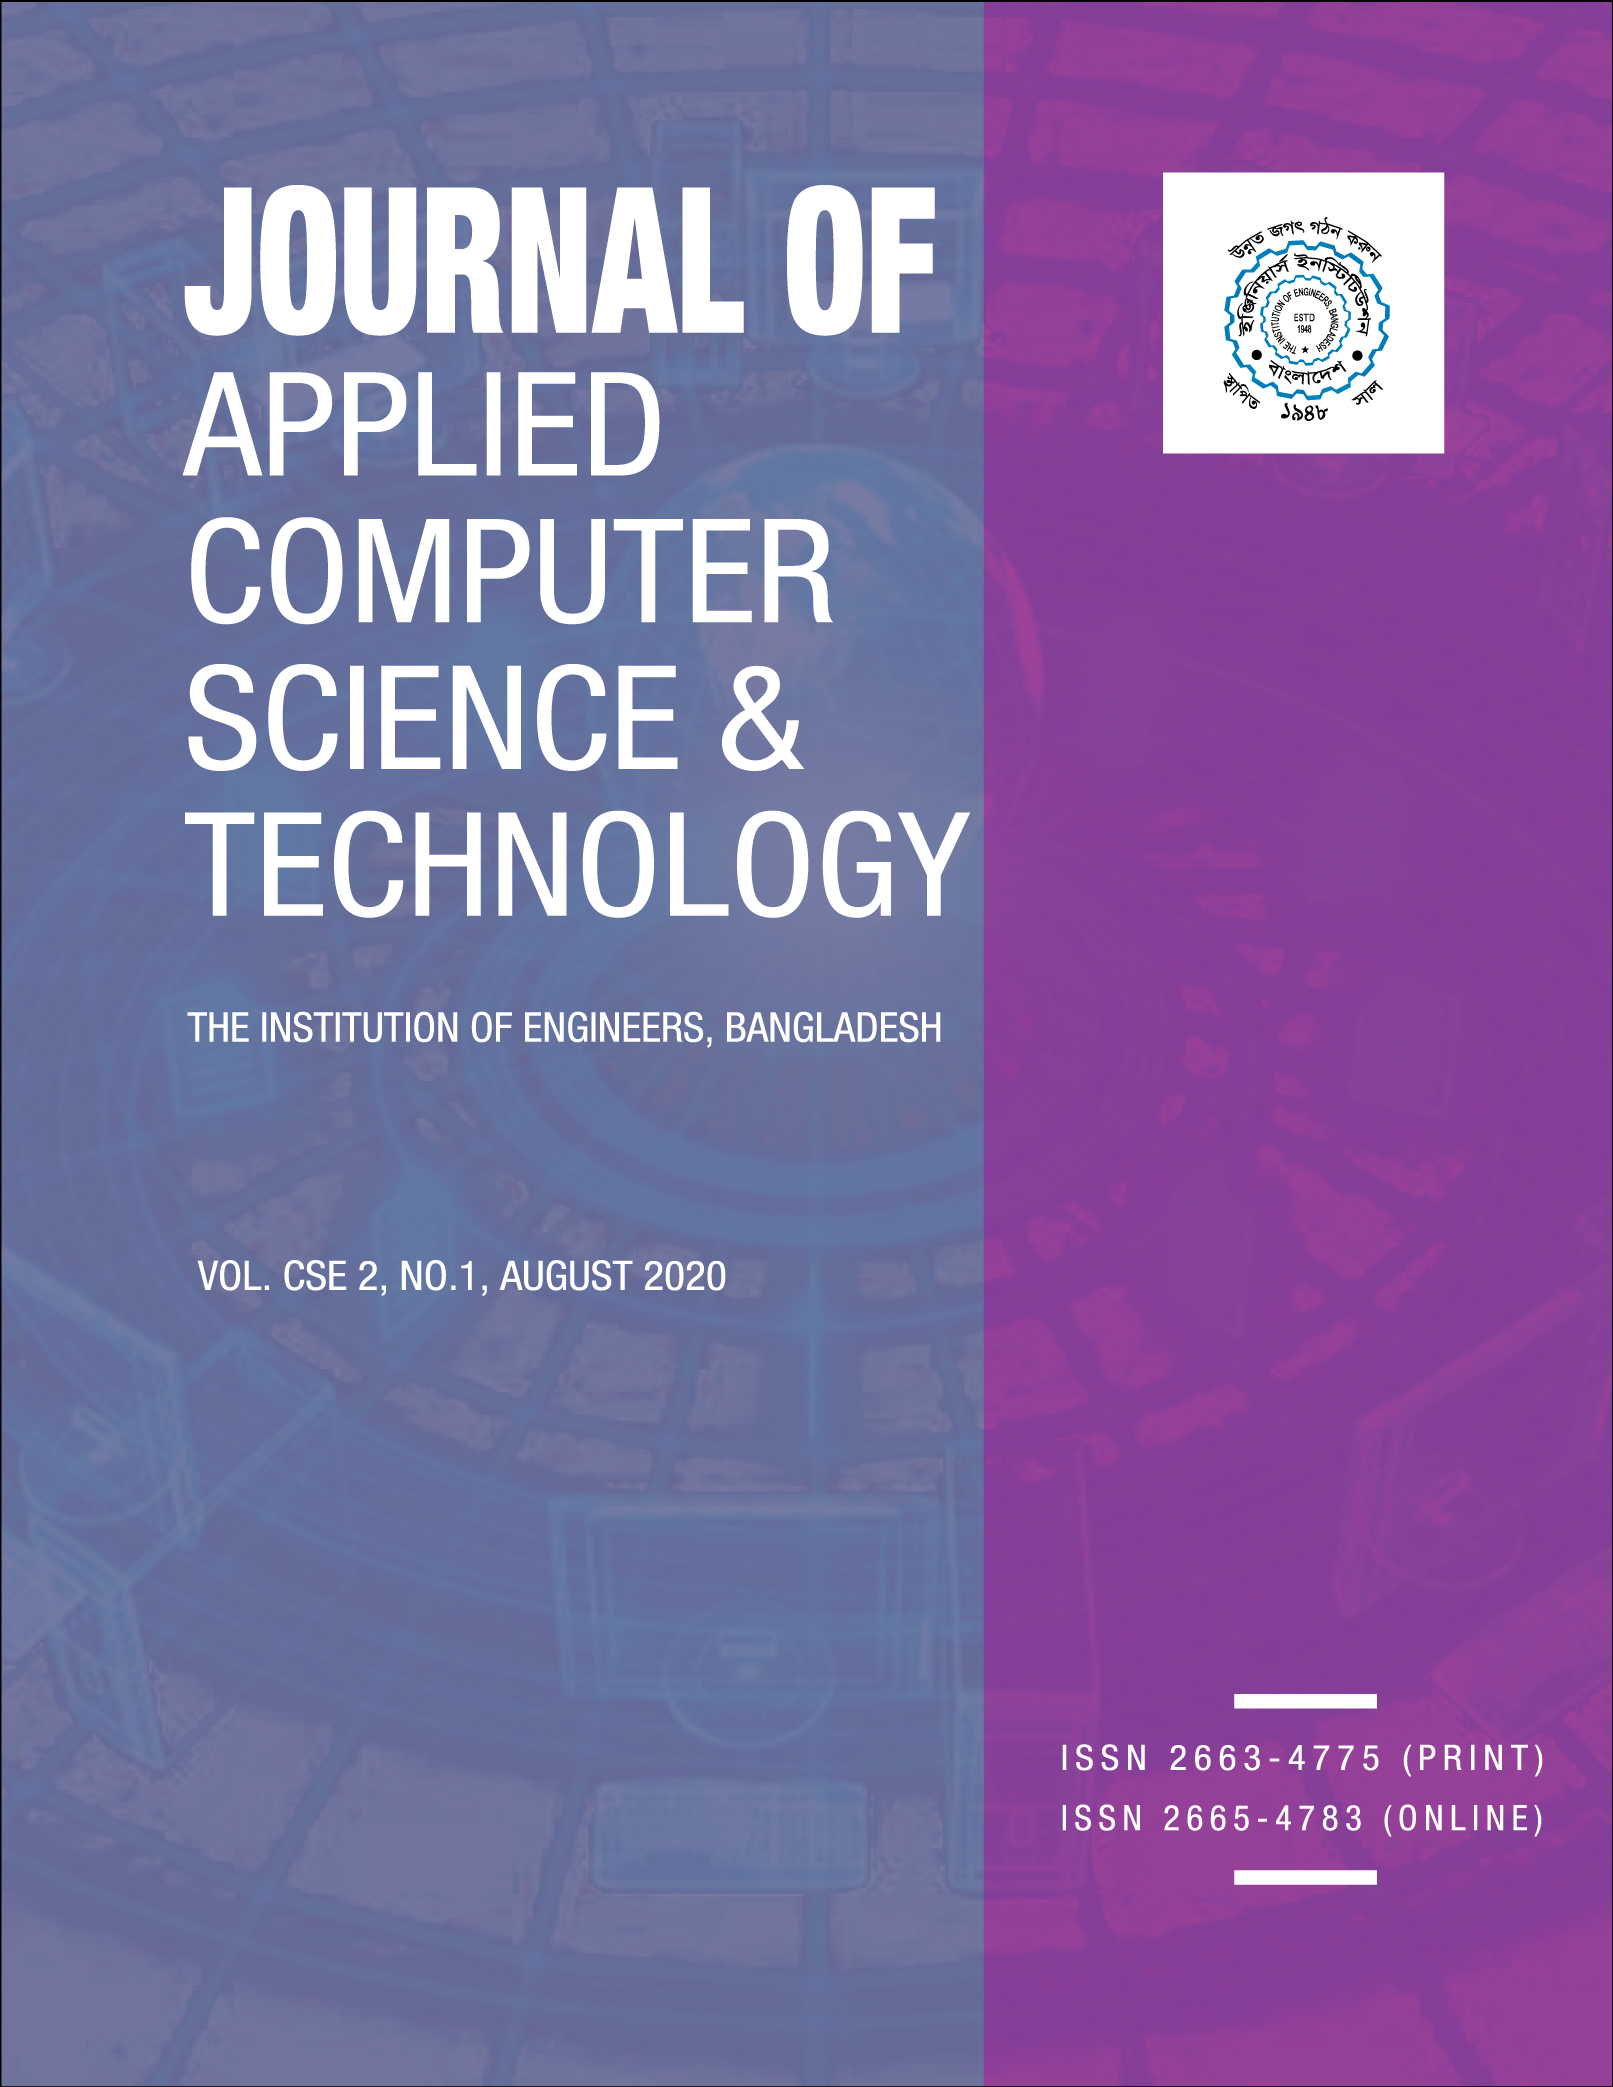 Journal of Applied Computer Science & Technology Vol:  CSE 2, No. 1, August 2020